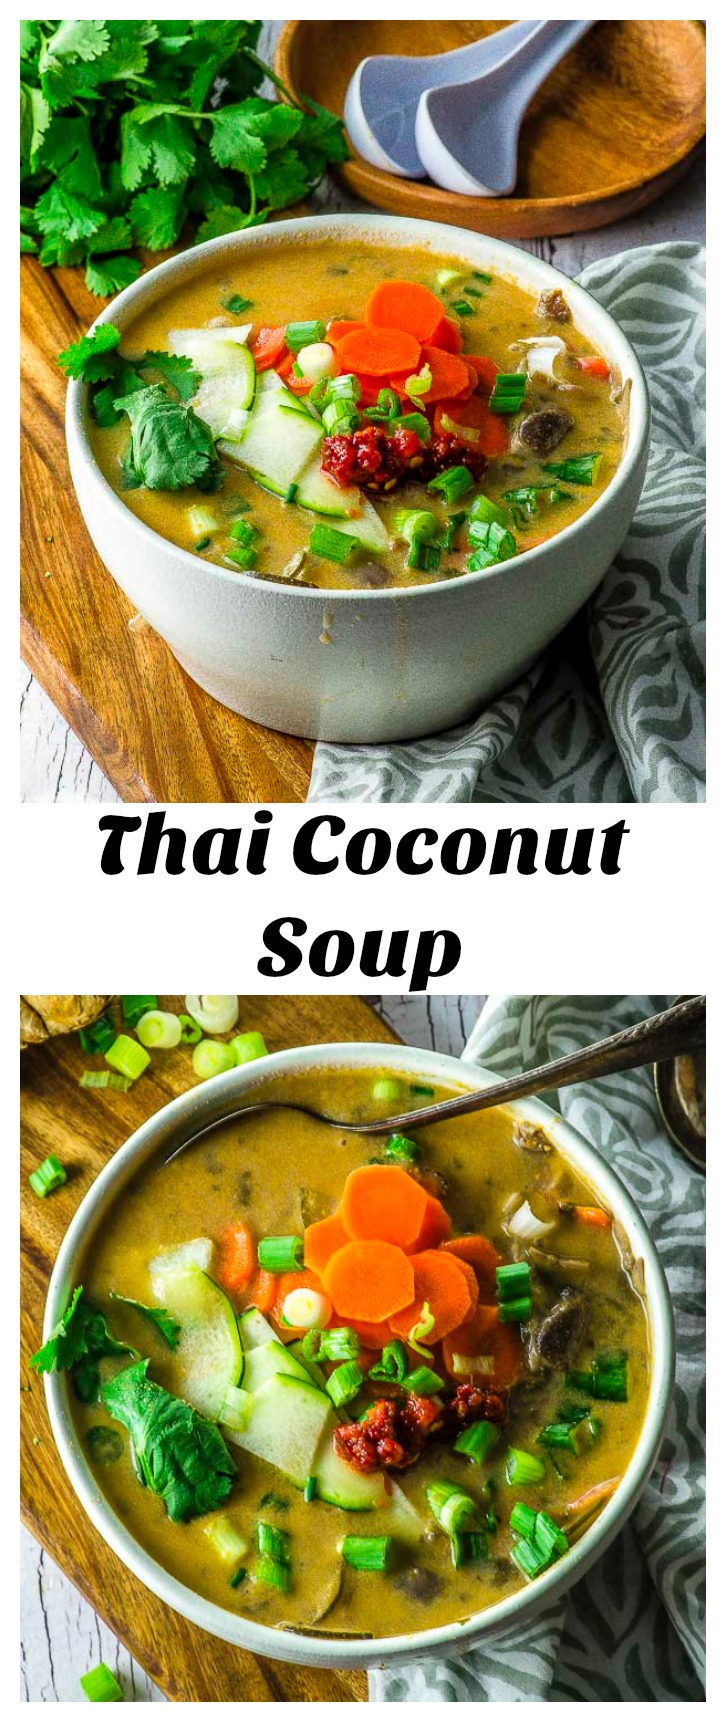 This Coconut Soup is a delightful blend of creamy coconut milk and Asian flavorings. Our vegan recipe uses easily found ingredients to make an exquisite soup. #Vegan #Thai #coconut #soup #passover